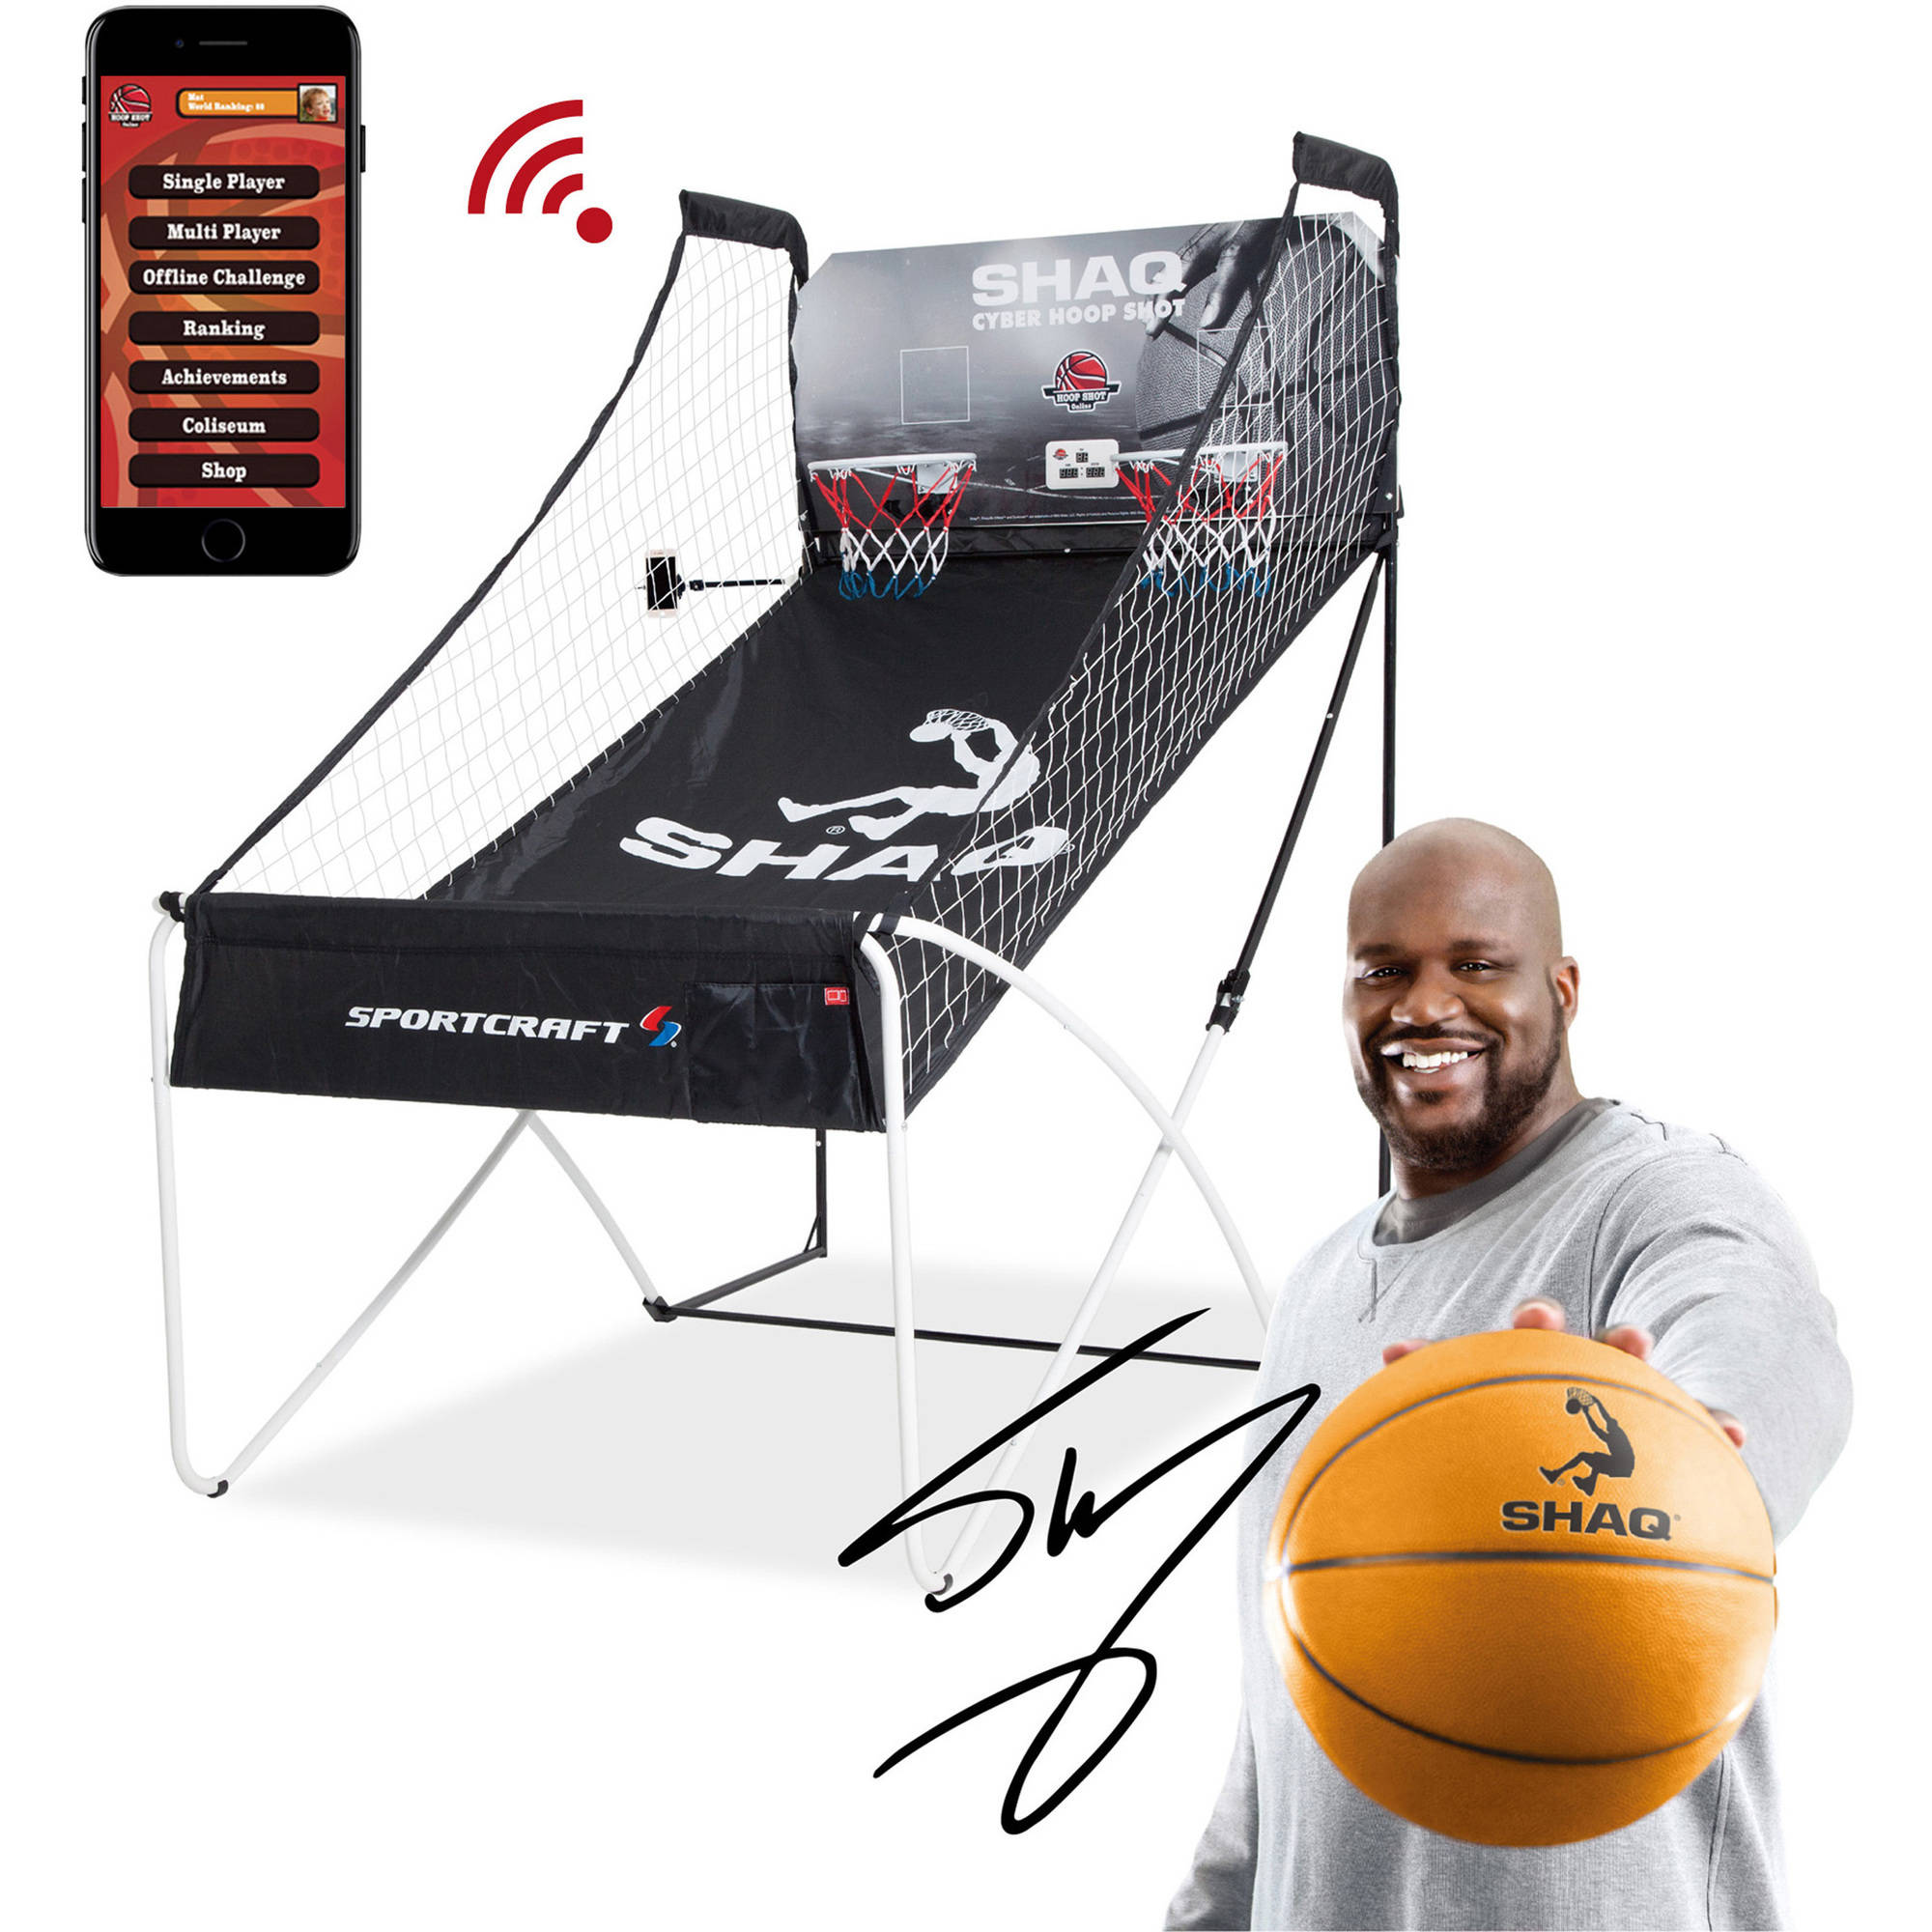 SHAQ Double Hoop Shot Basketball Arcade Conventional + Online App Game Sportcraft